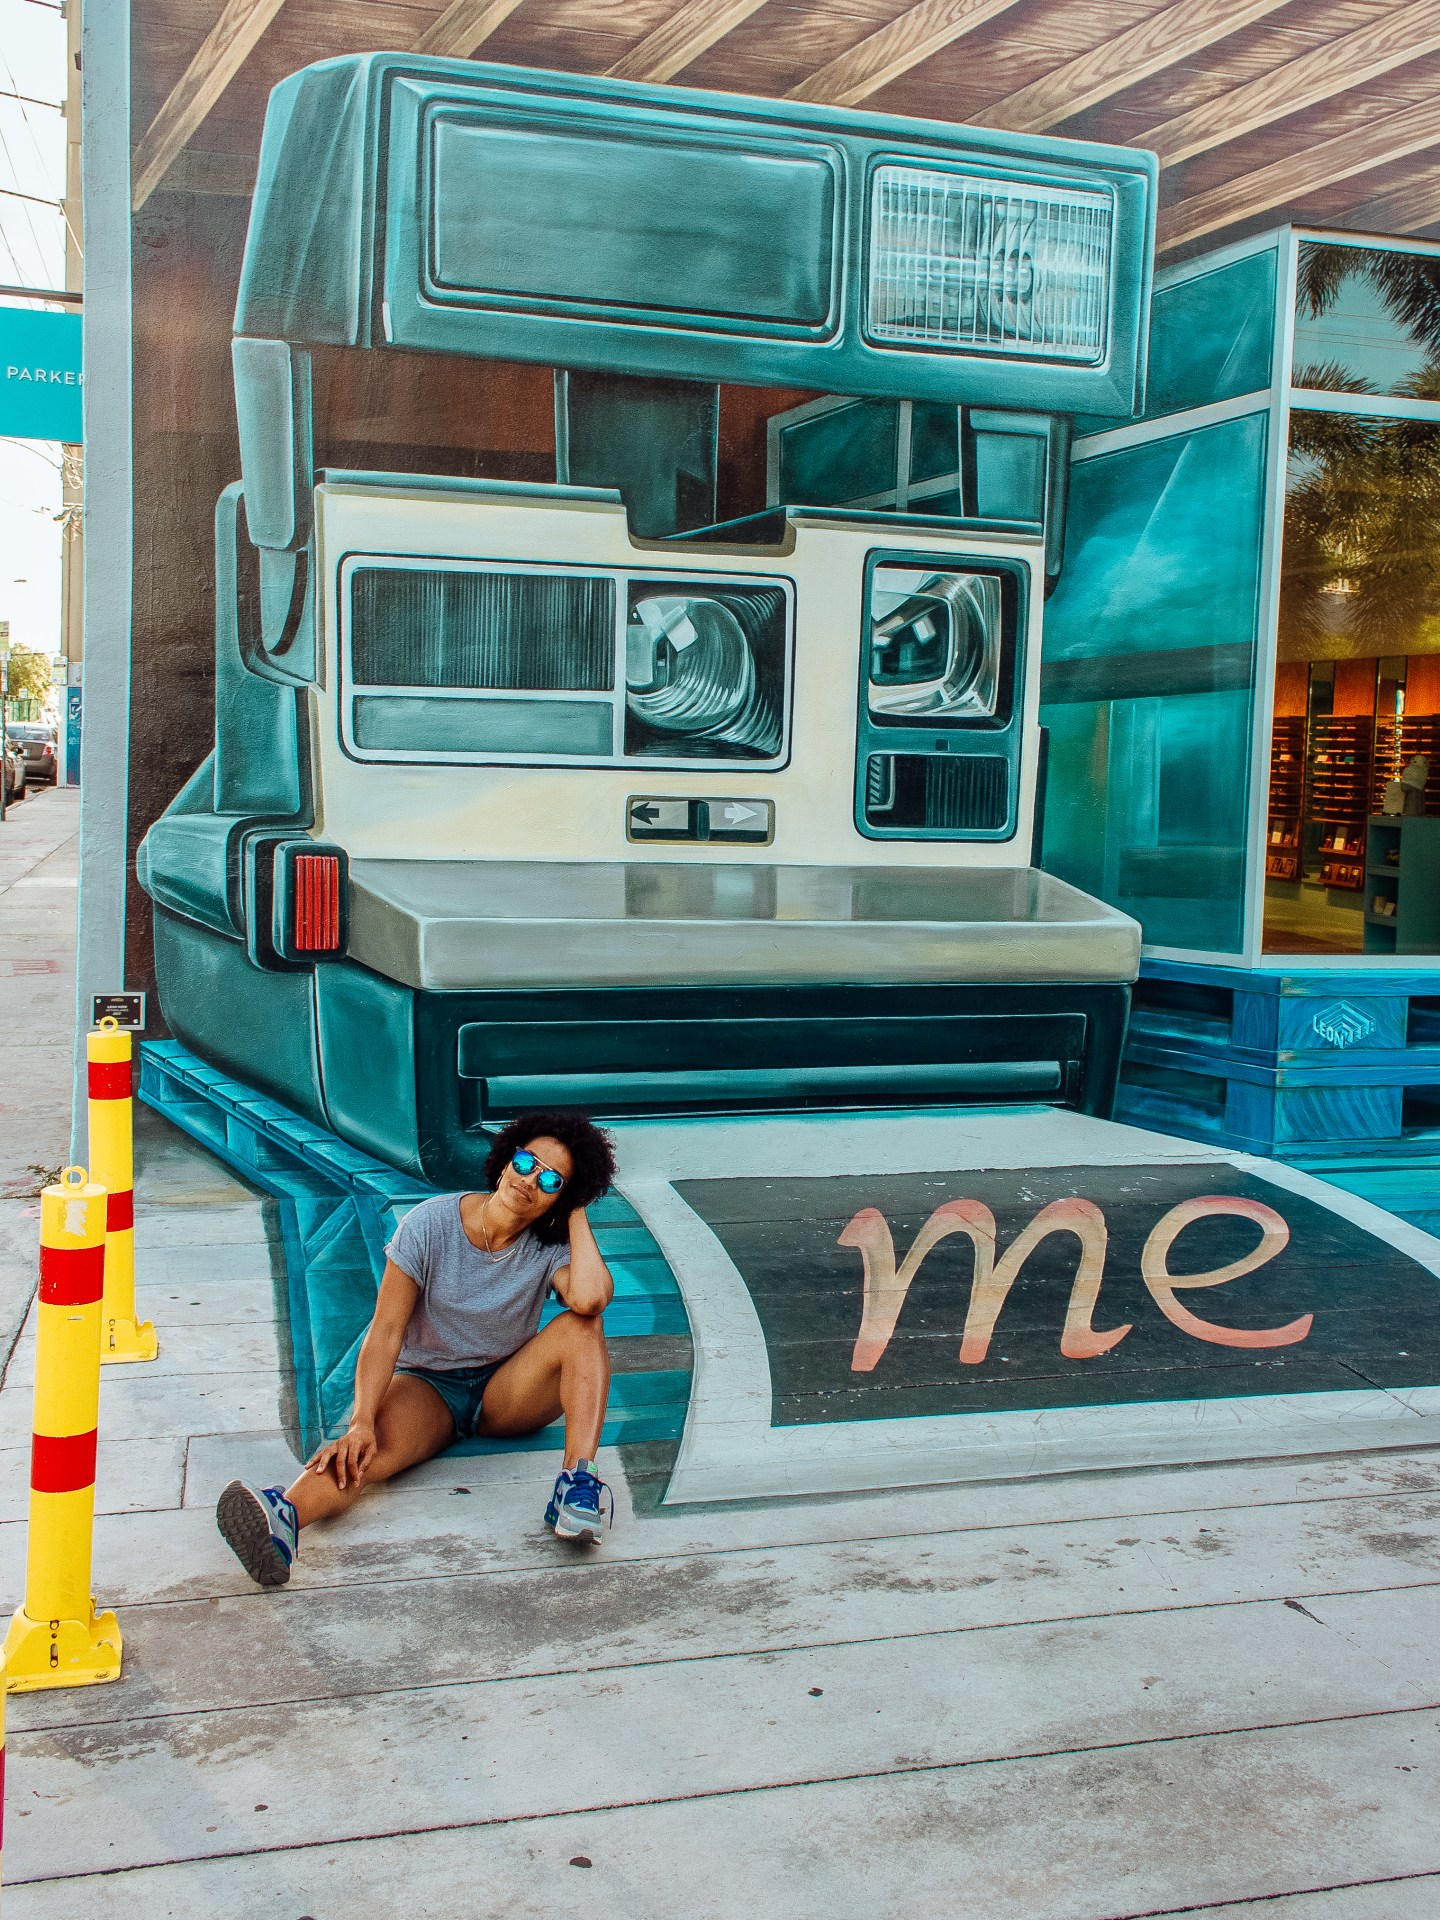 Illustrated by Sade - Wynwood Walls Mural